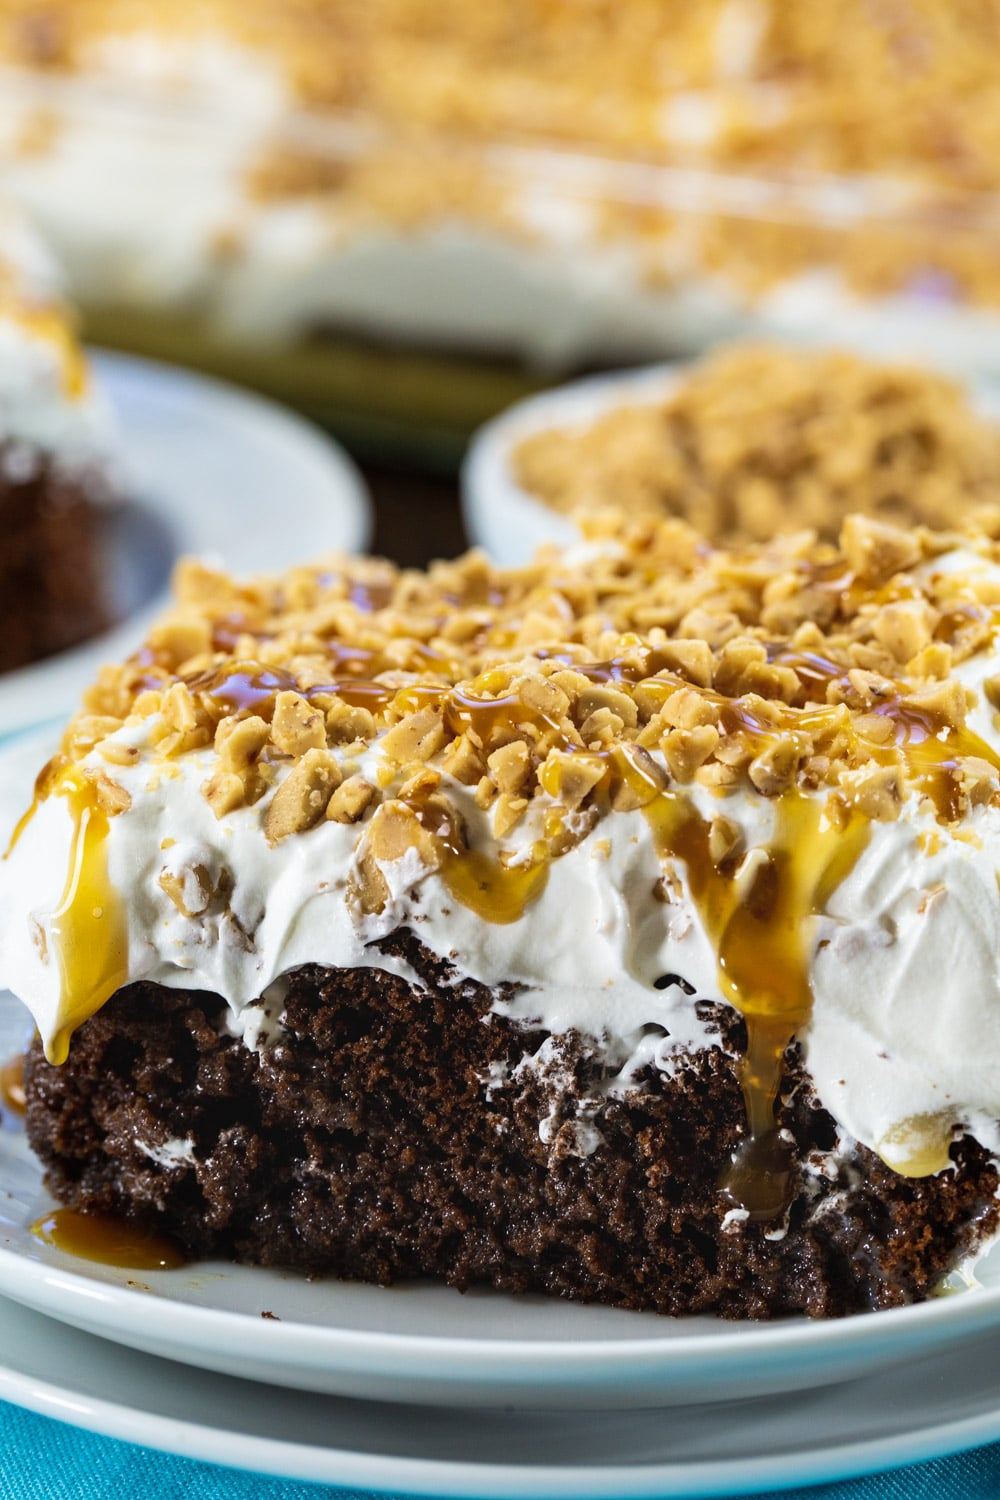 Close-up of piece of Toffee Poke Cake.